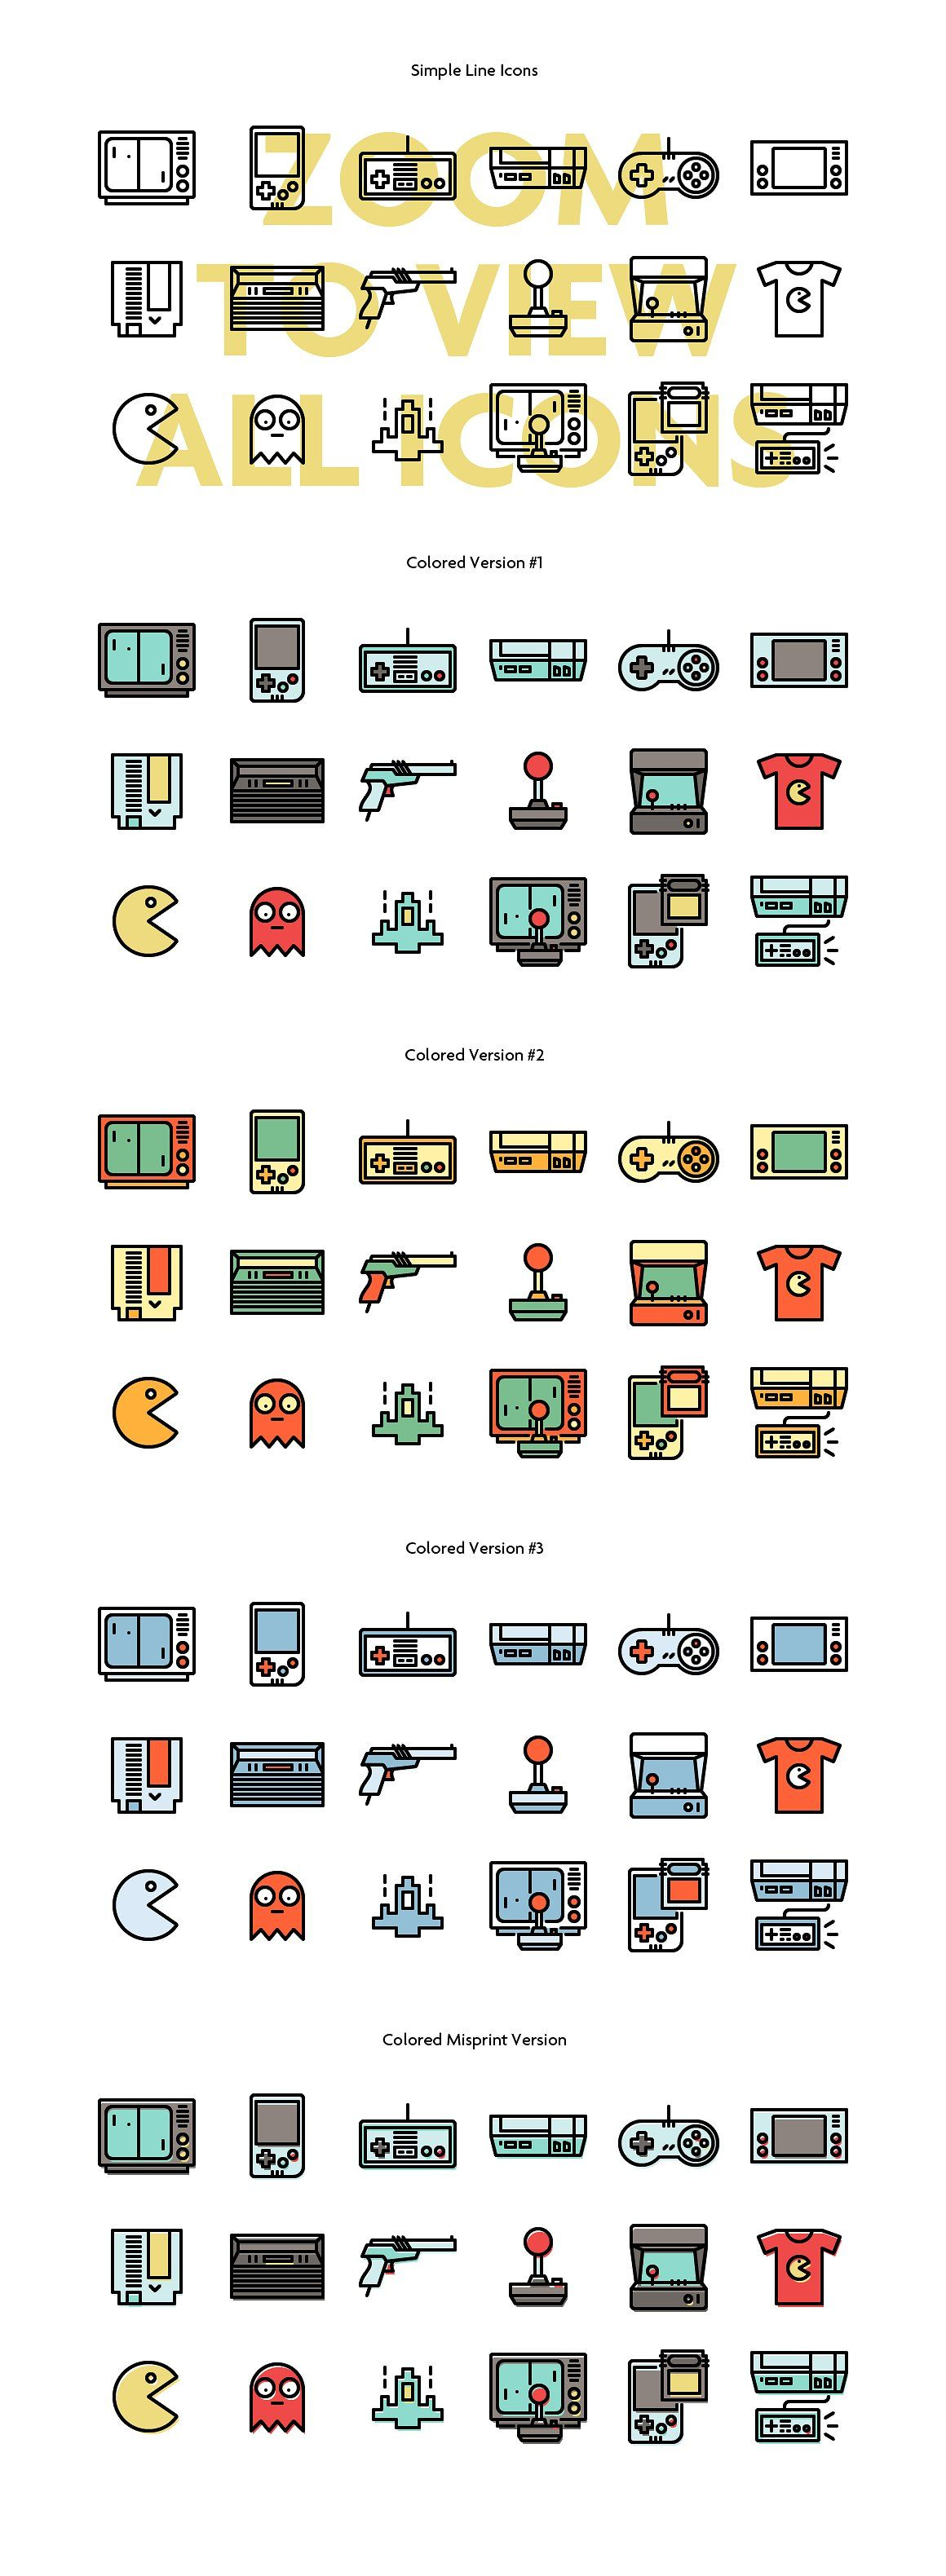 Pin by Excuseme on Christmas Illustrations | Line icon, Icon